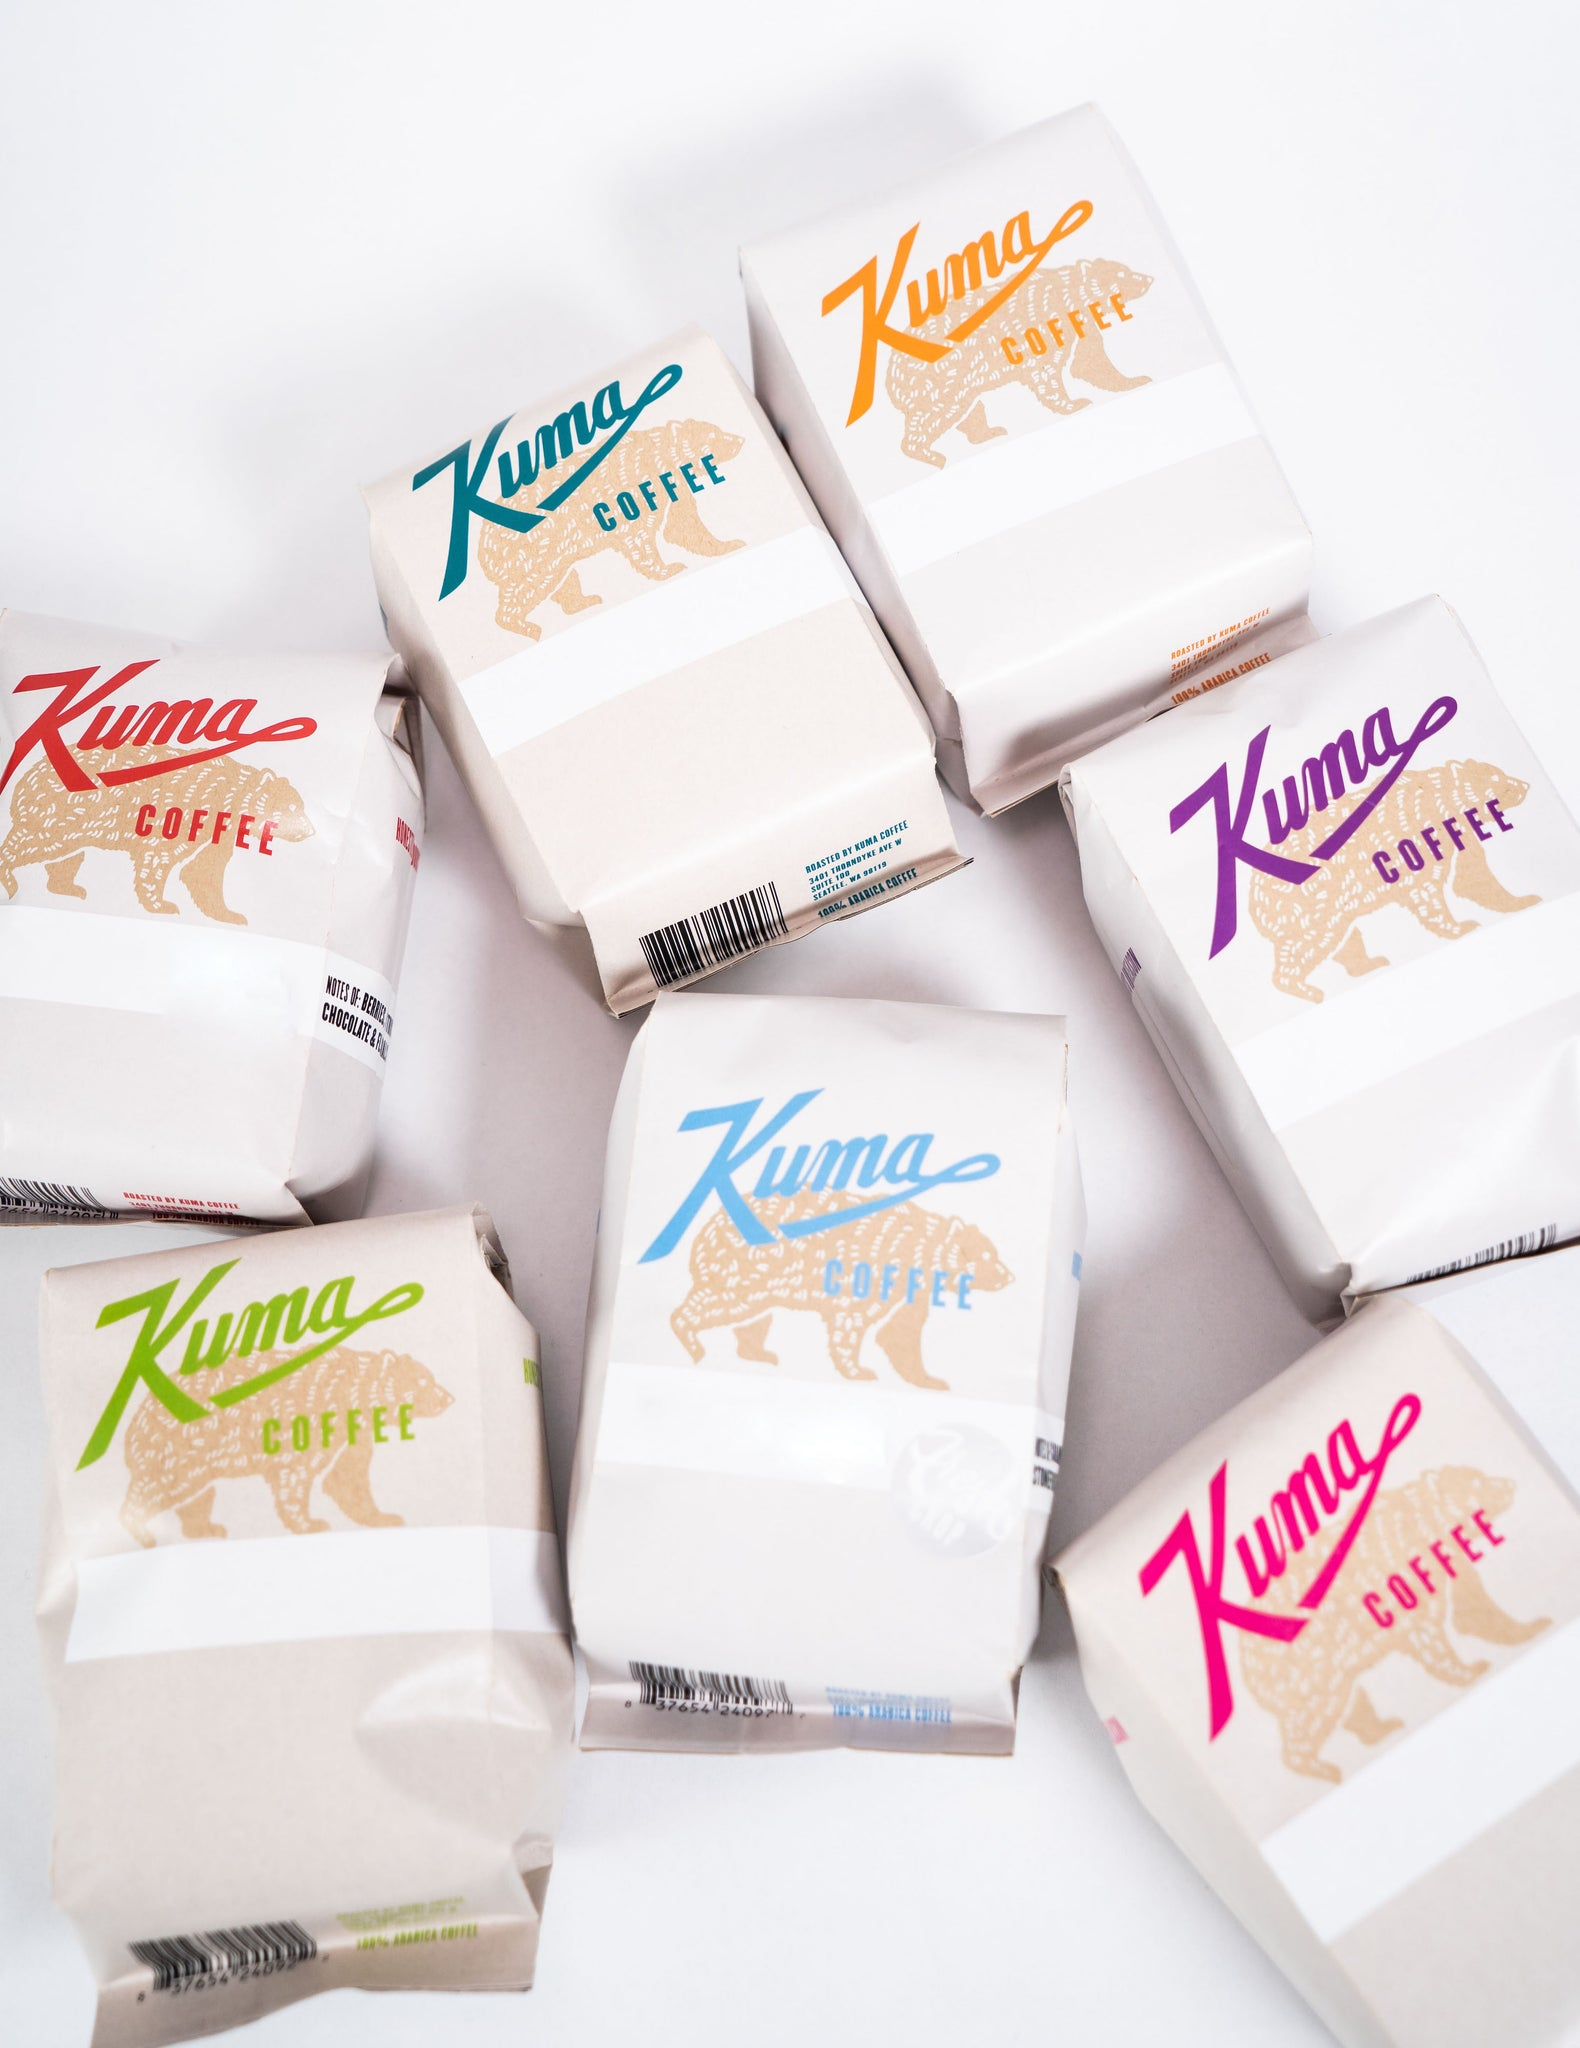 Seven 12oz bags of single origin Kuma Coffee, featuring a kraft brown bear with red, blue, teal, orange, purple, green and pink text